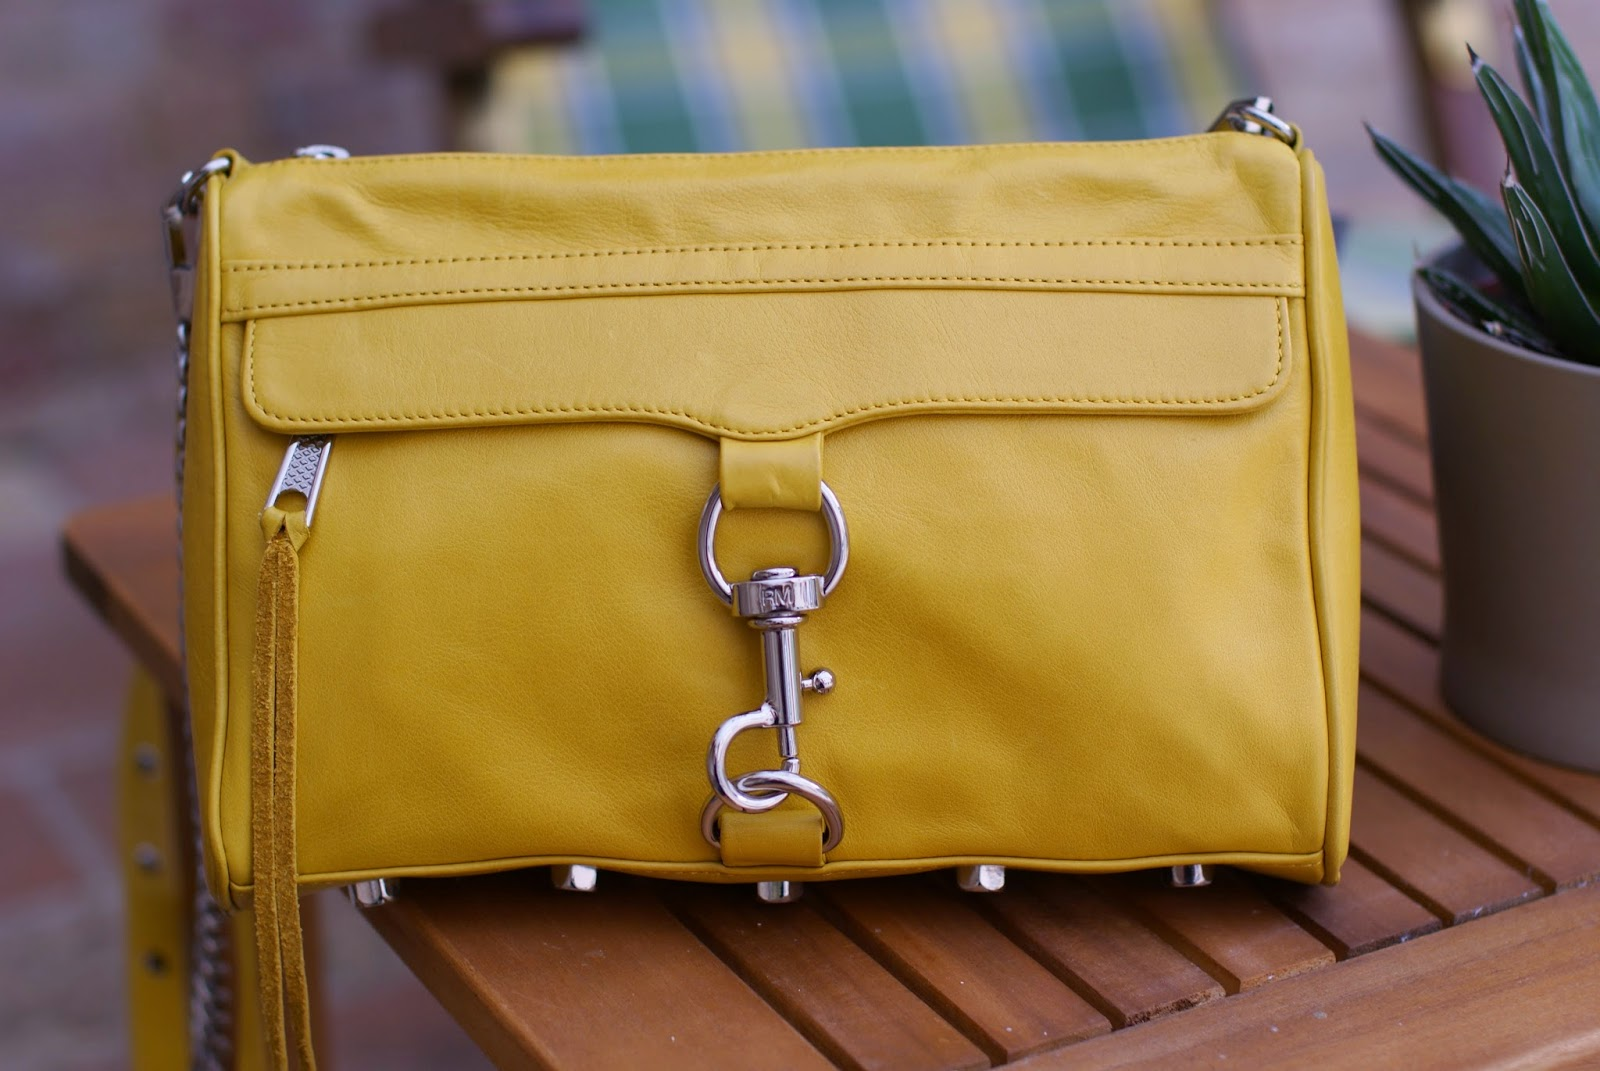 Rebecca Minkoff MAC clutch in yellow, Fashion and Cookies, fashion blogger